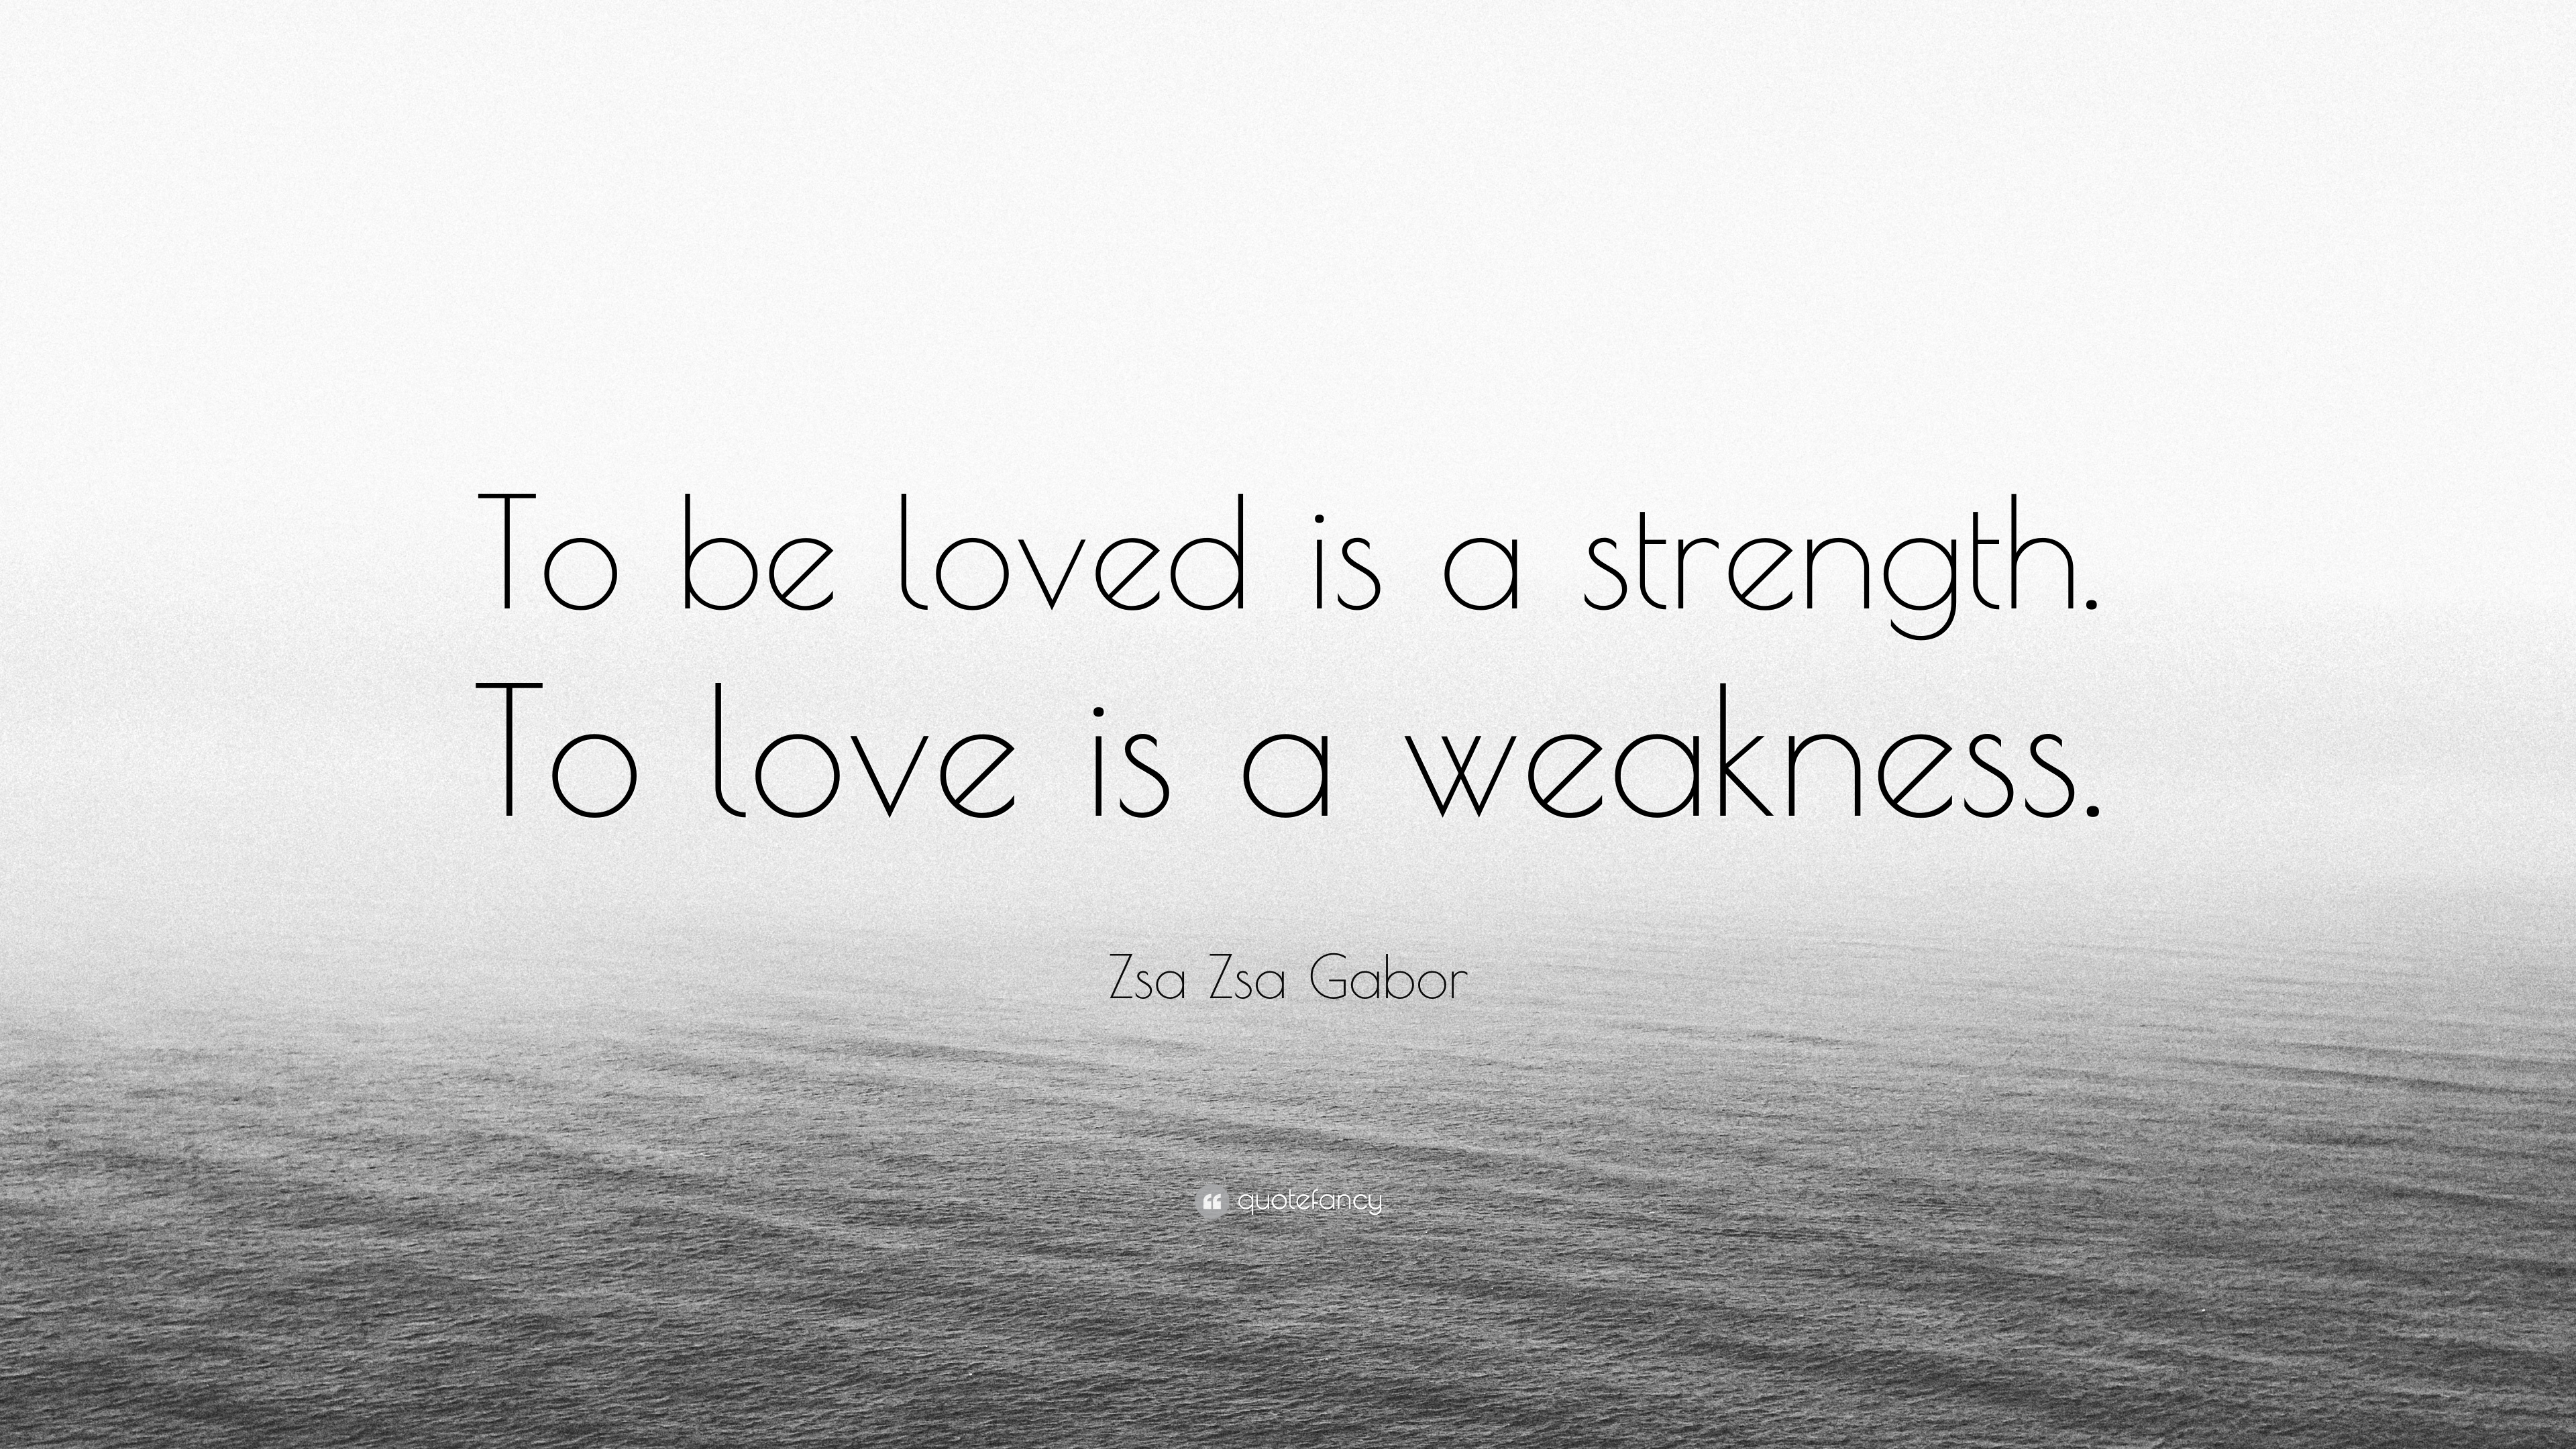 Zsa Zsa Gabor Quotes | Zsa Zsa Gabor Quote To Be Loved Is A Strength To Love Is A